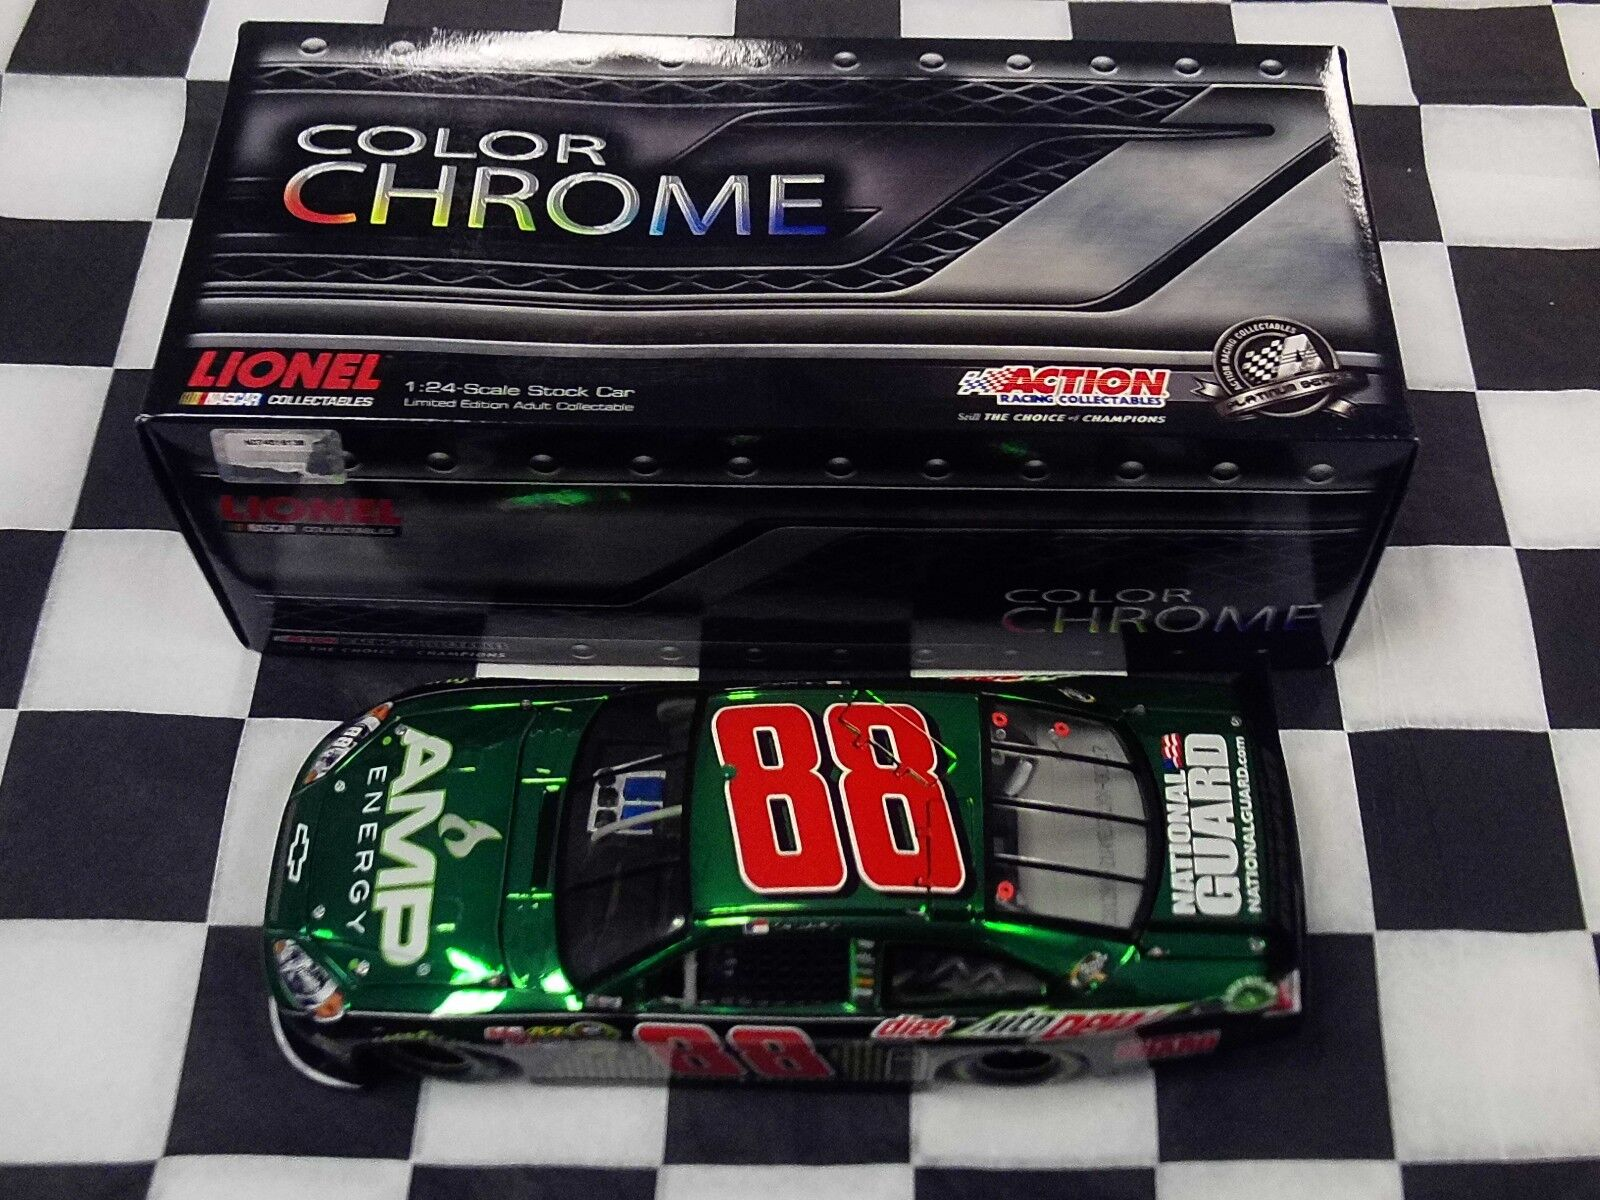 Dale Earnhardt Jr AMP Energy 2012 Impala Action NIB car color Chrome NASCAR